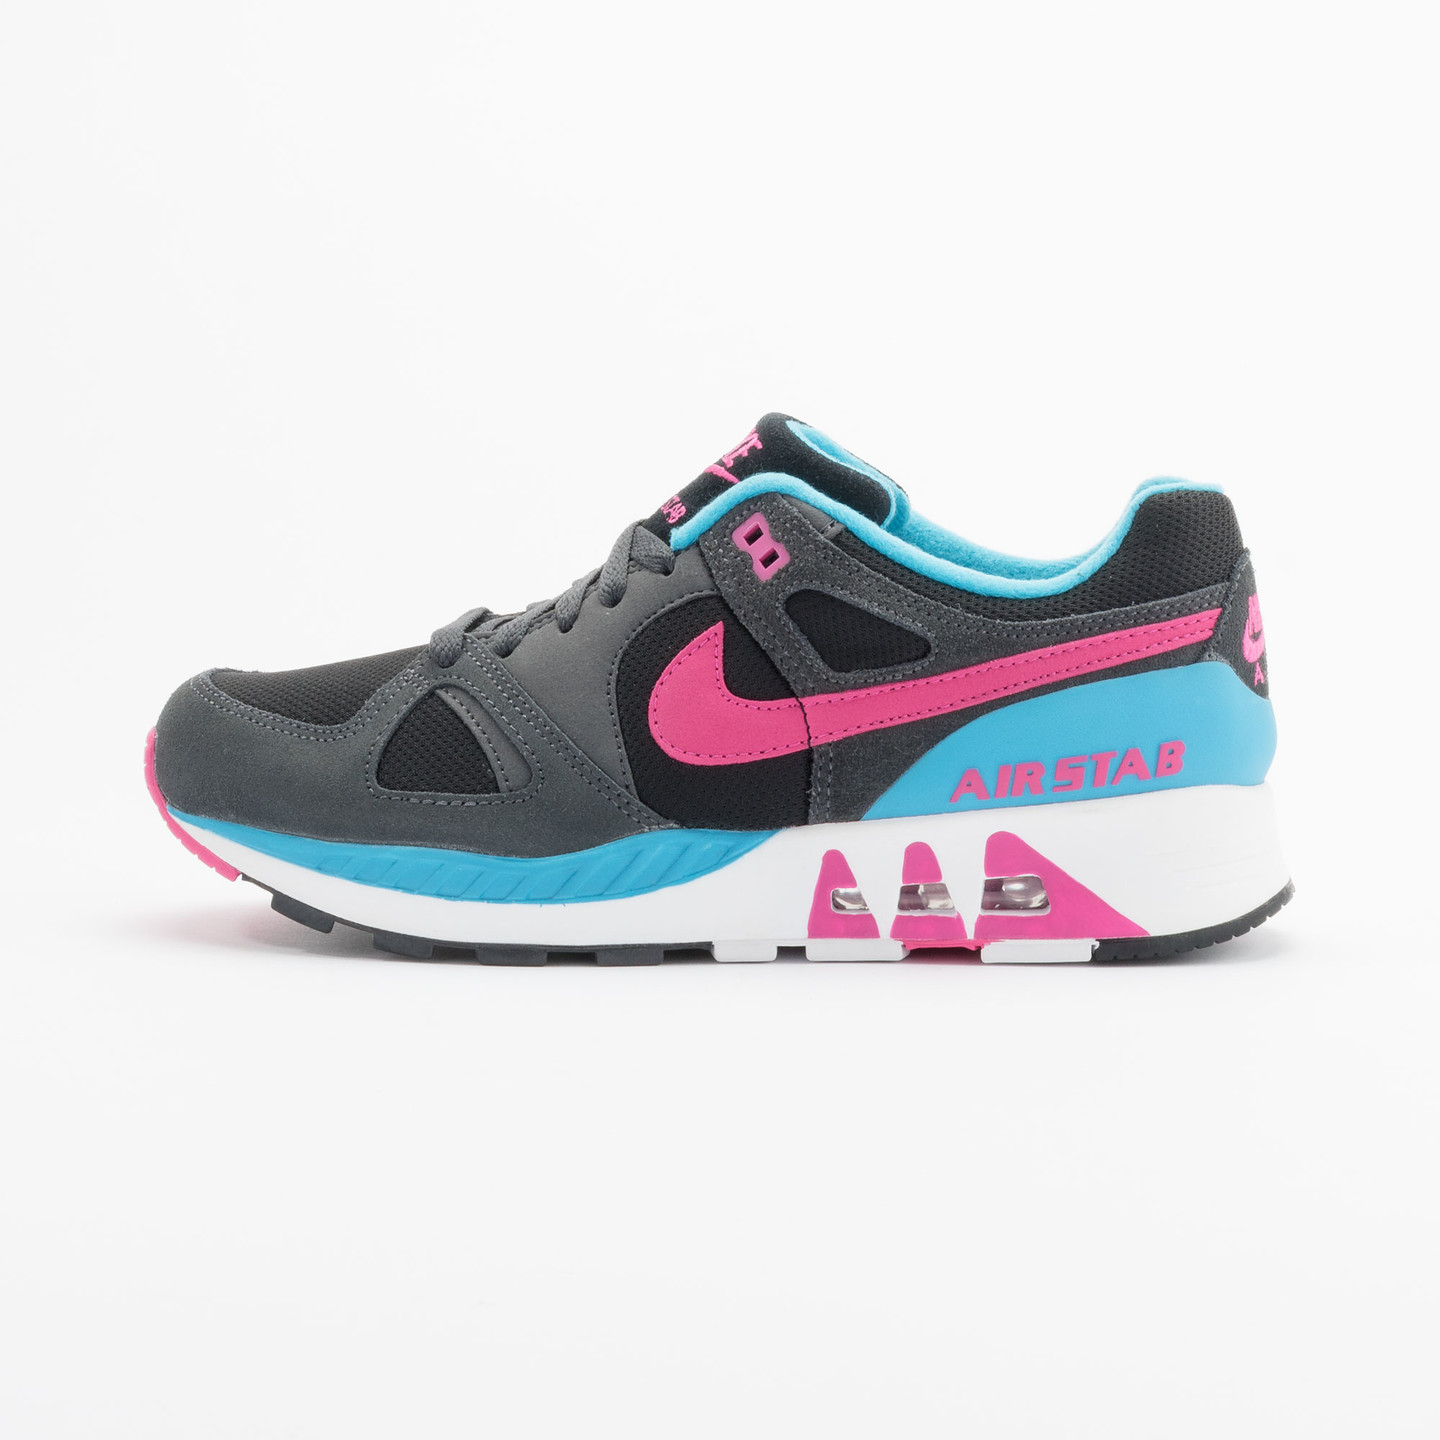 Nike Air Stab Black/Hot Pink-Anthrct-Bl Lgn 312451-004-41